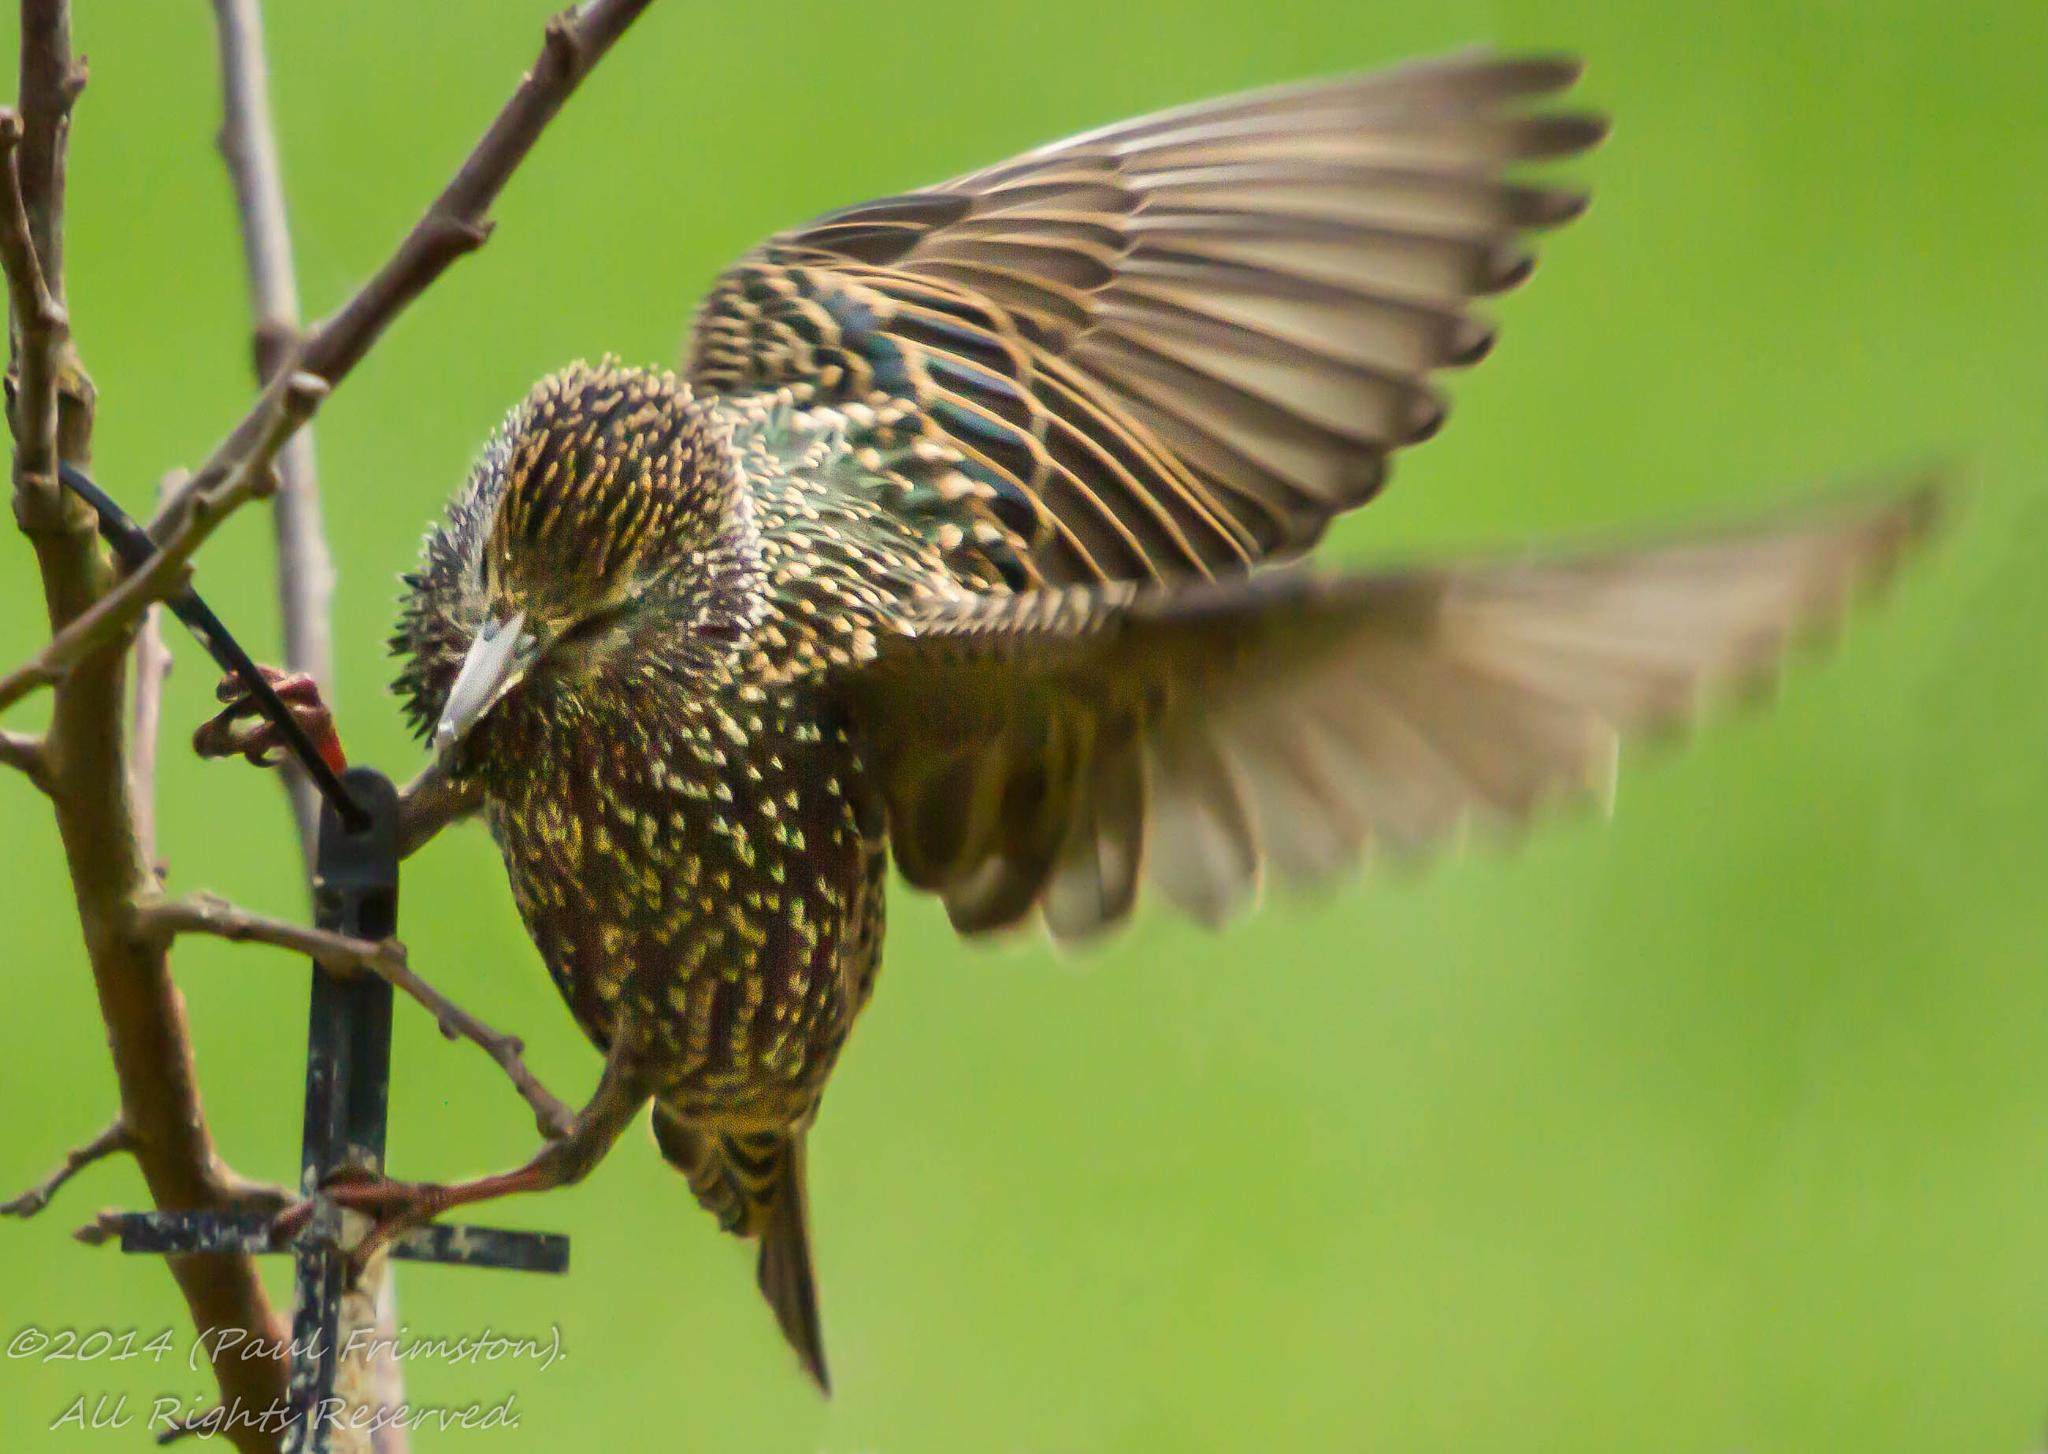 Starling by Paul Frimston